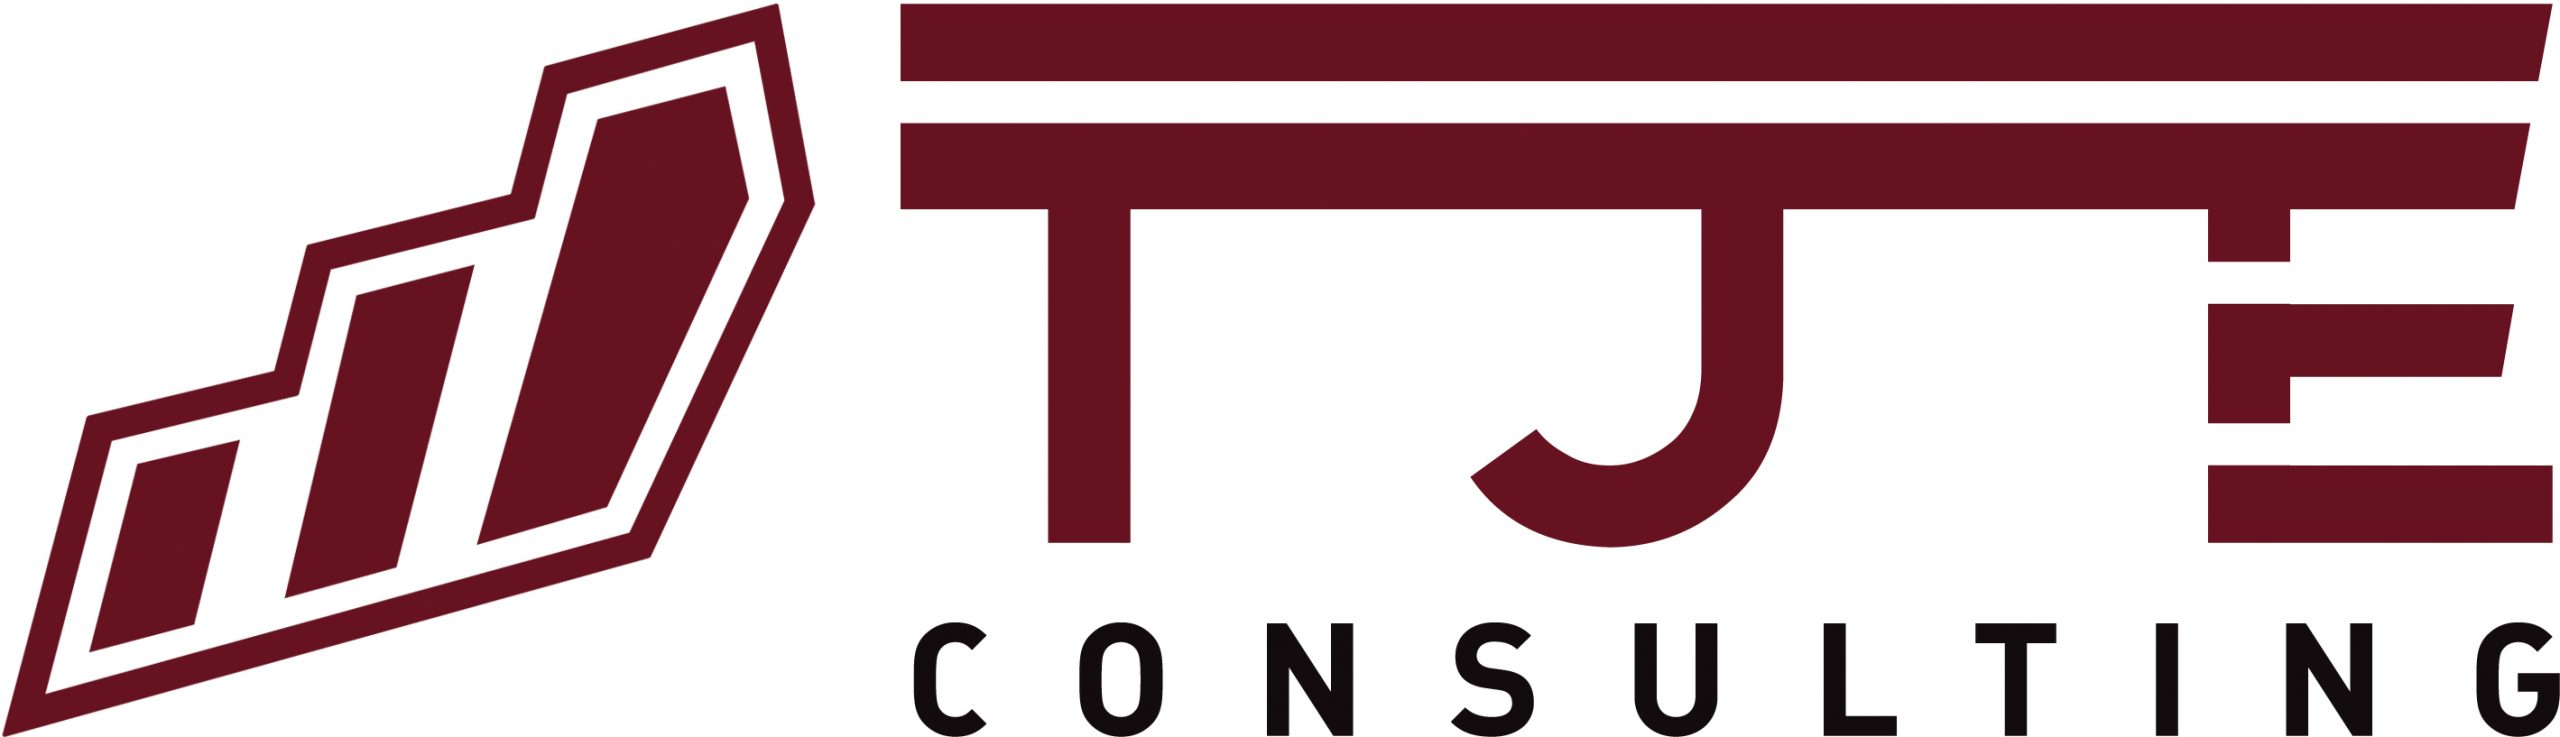 TJE-Consulting-Logo-Colour-scaled